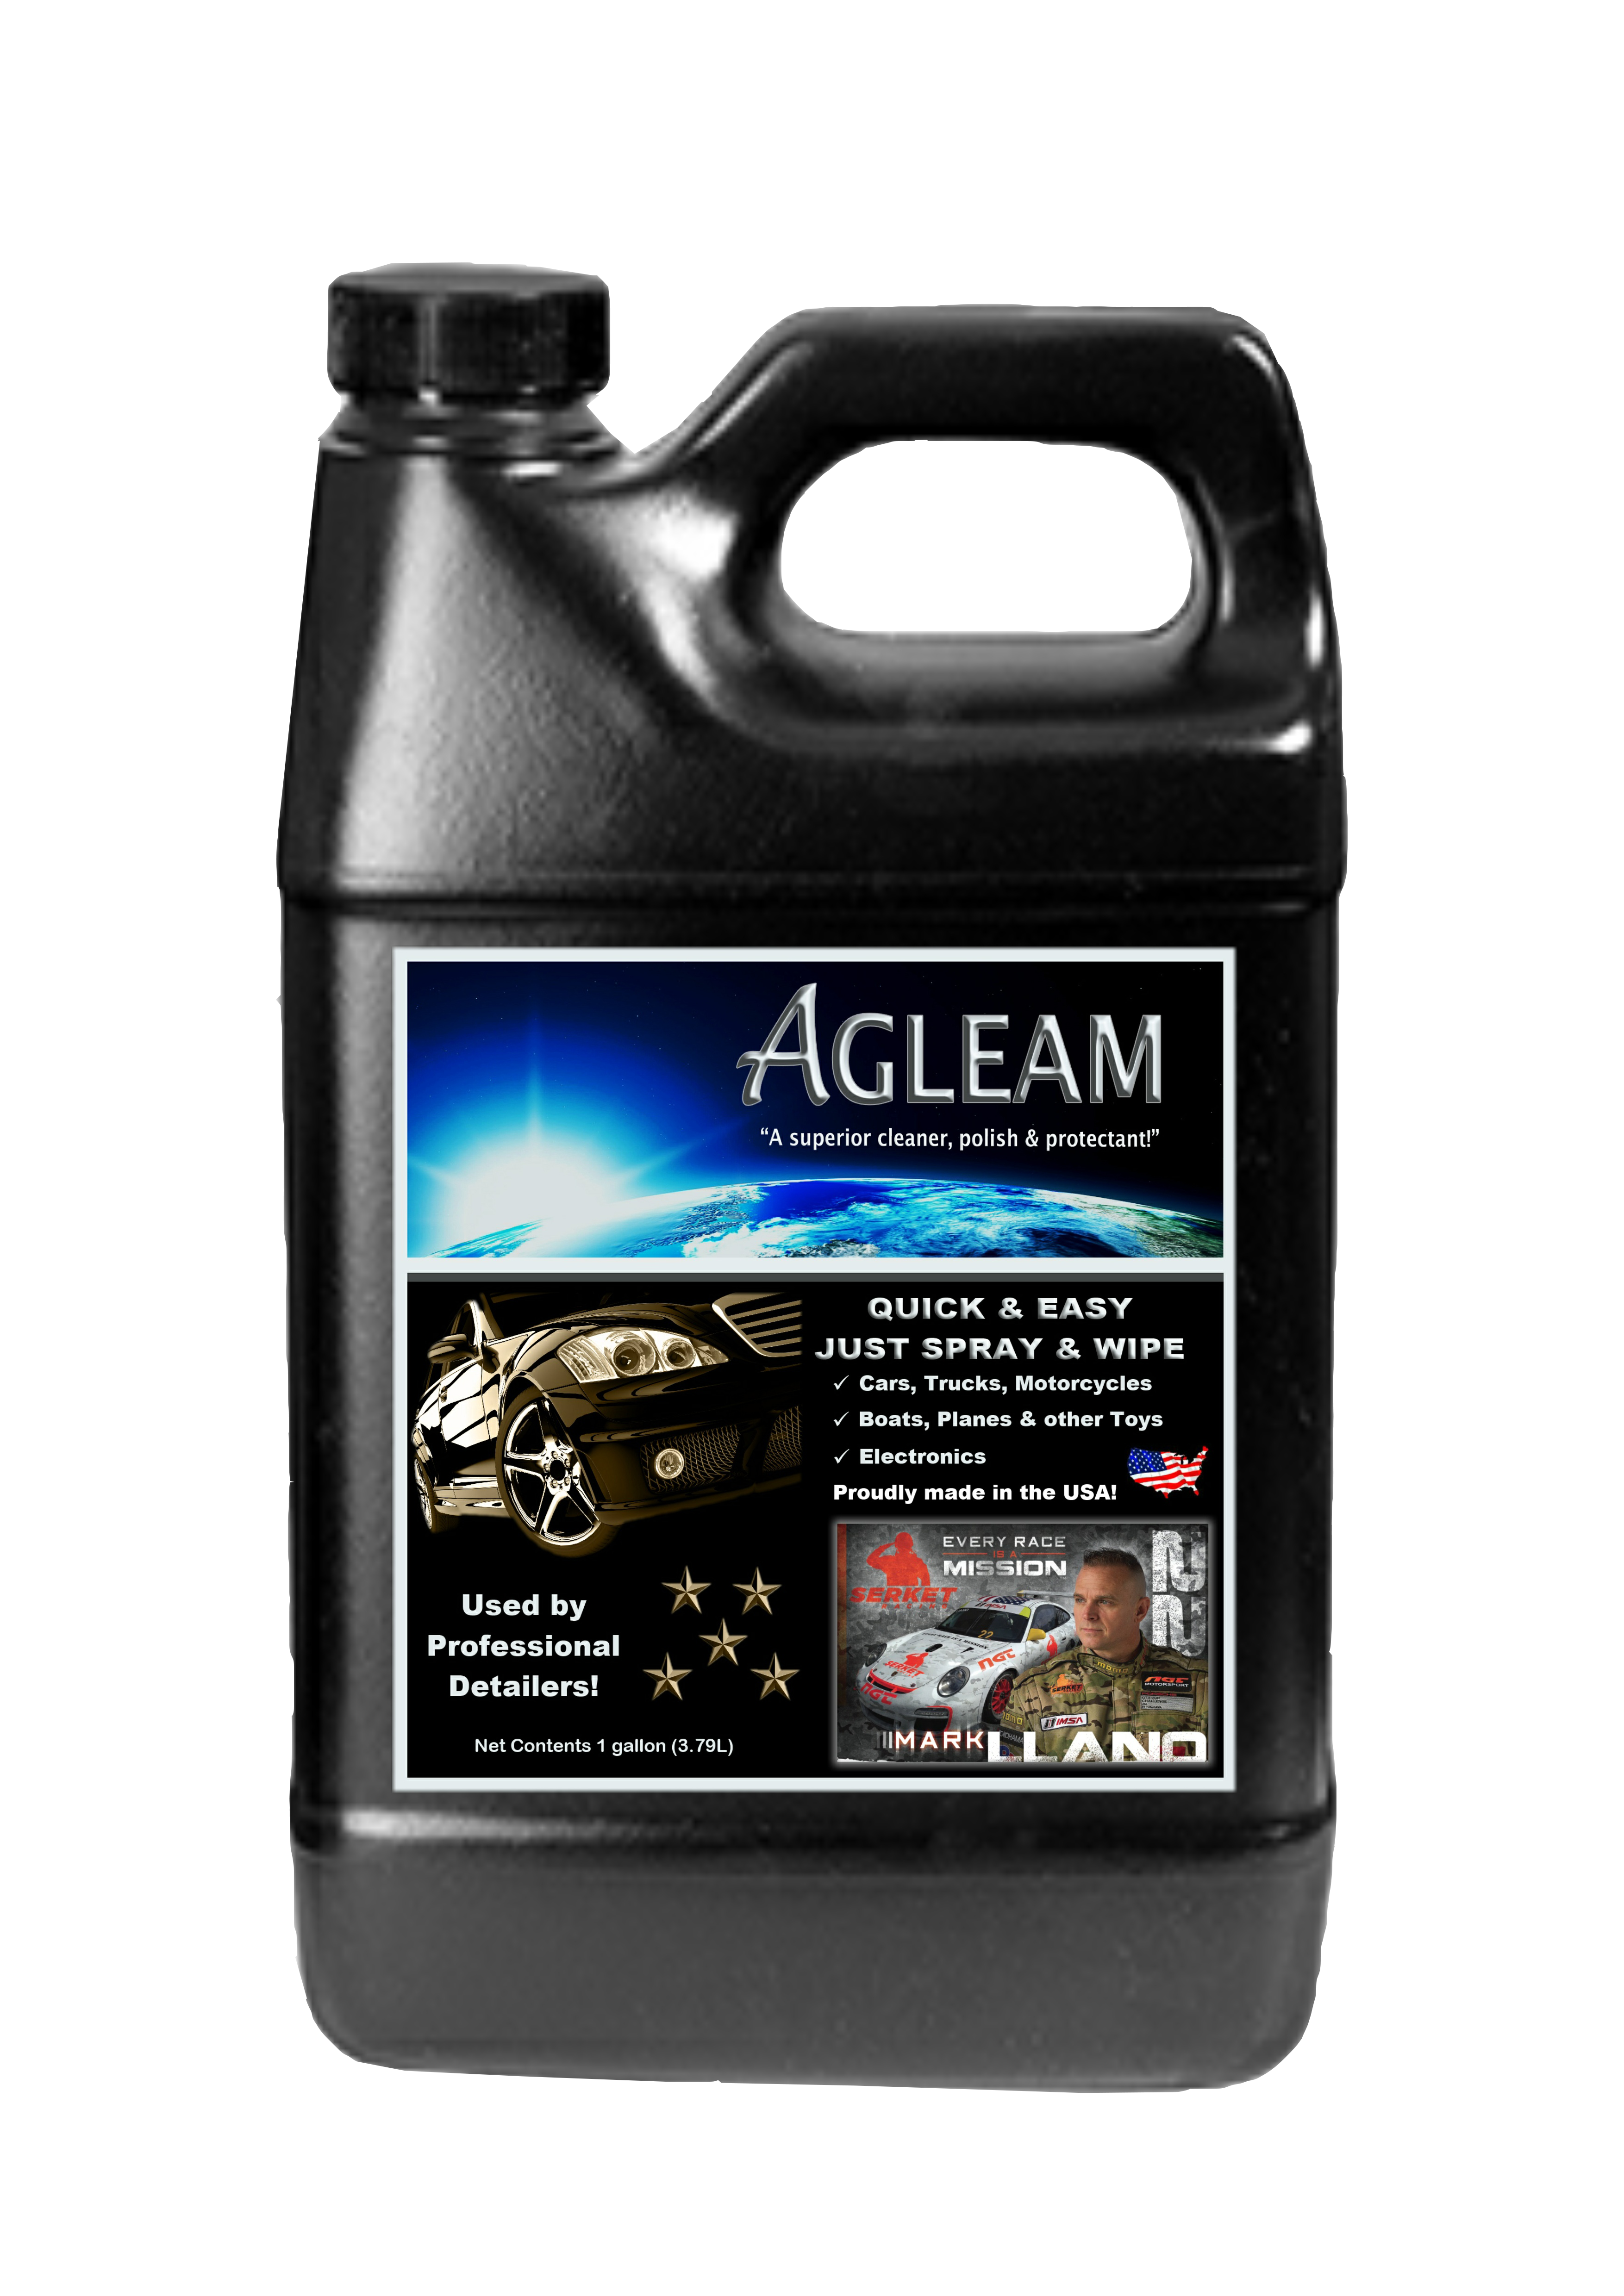 Agleam 1 Gallon Ready-To-Use